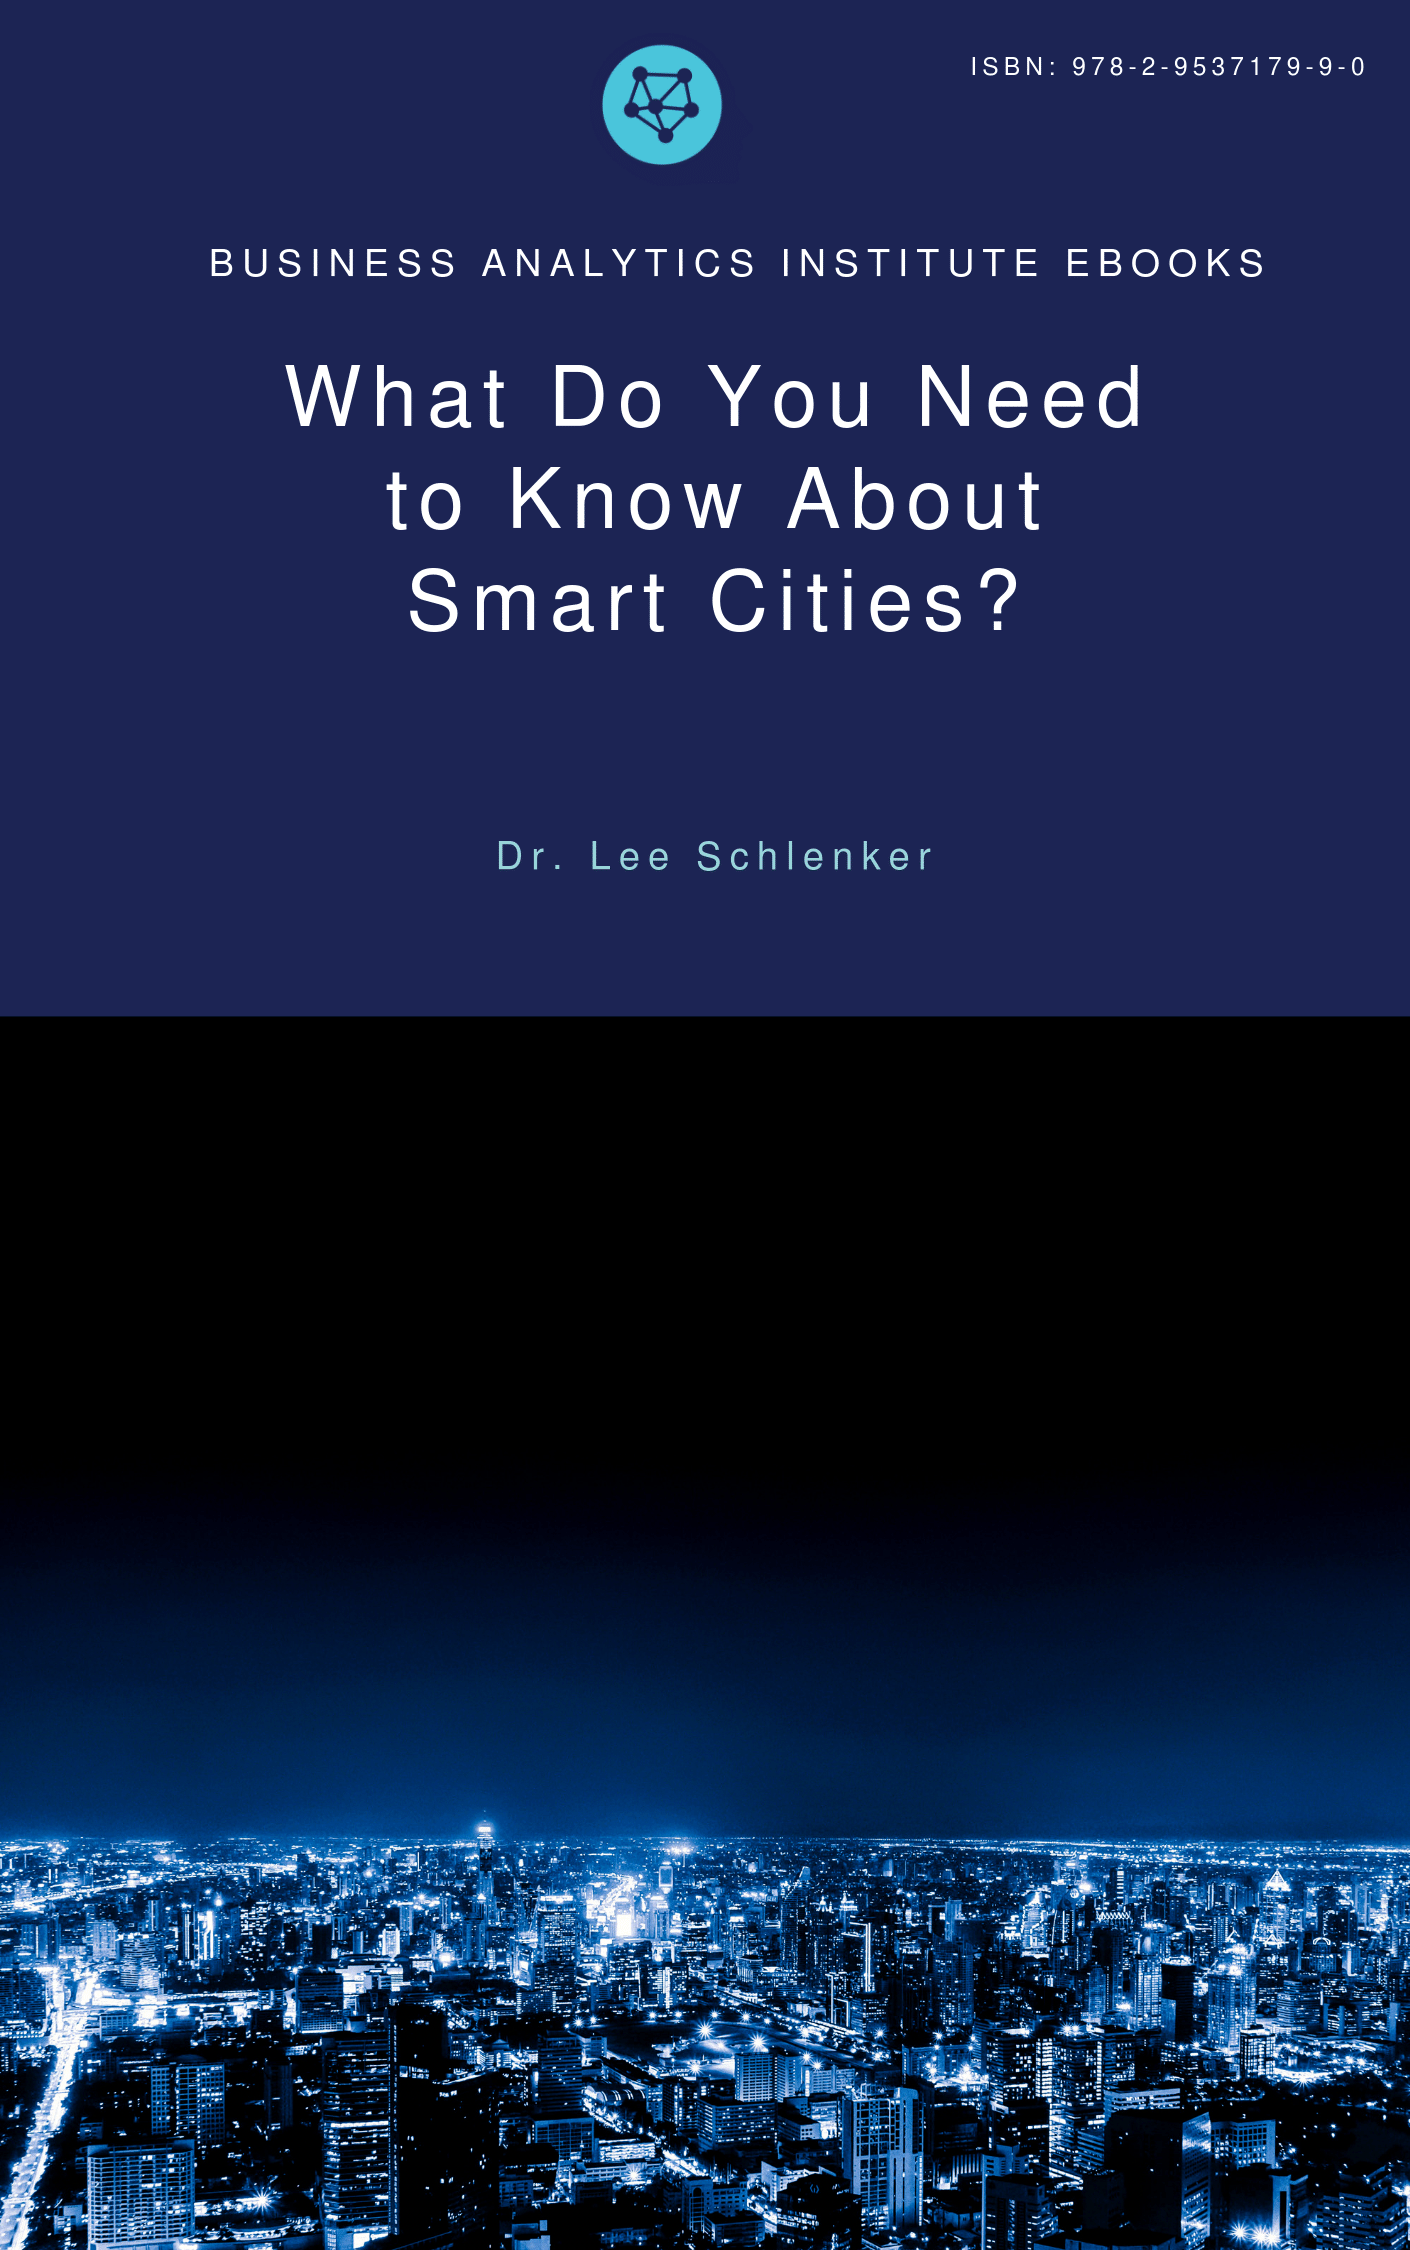 Free e-book: Smart Cities - Smart Cities are not defined by the sophistication of their technical infrastructure but by the readiness of their citizens to act in the best interests of the community.Smart Cities are built around shared mindsets of leveraging Data Science to address current and future societal challenges. Because public organizations, resources, and interests differ markedly from those found in the private sector, the use of Data Science in Smart Ciies requires data practices tailored to the realities of City, State and regional governance. The success of Smart Cities initiatives will depend upon its stakeholders transforming data into services for the benefit and well-being of the community.